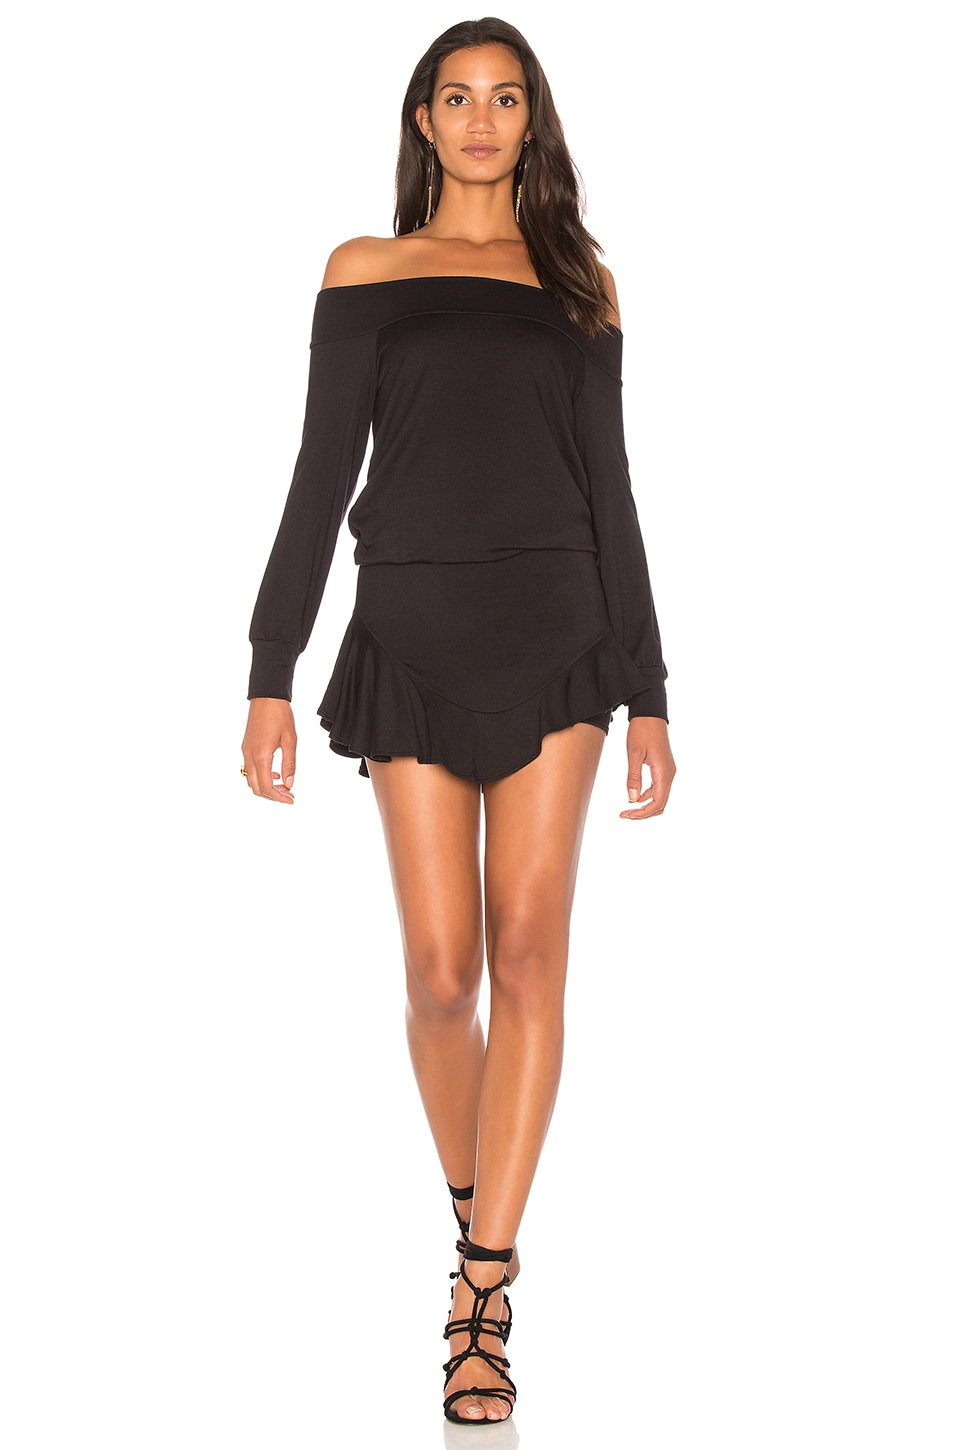 Riller & Fount Bertie Romper in Black French Terry